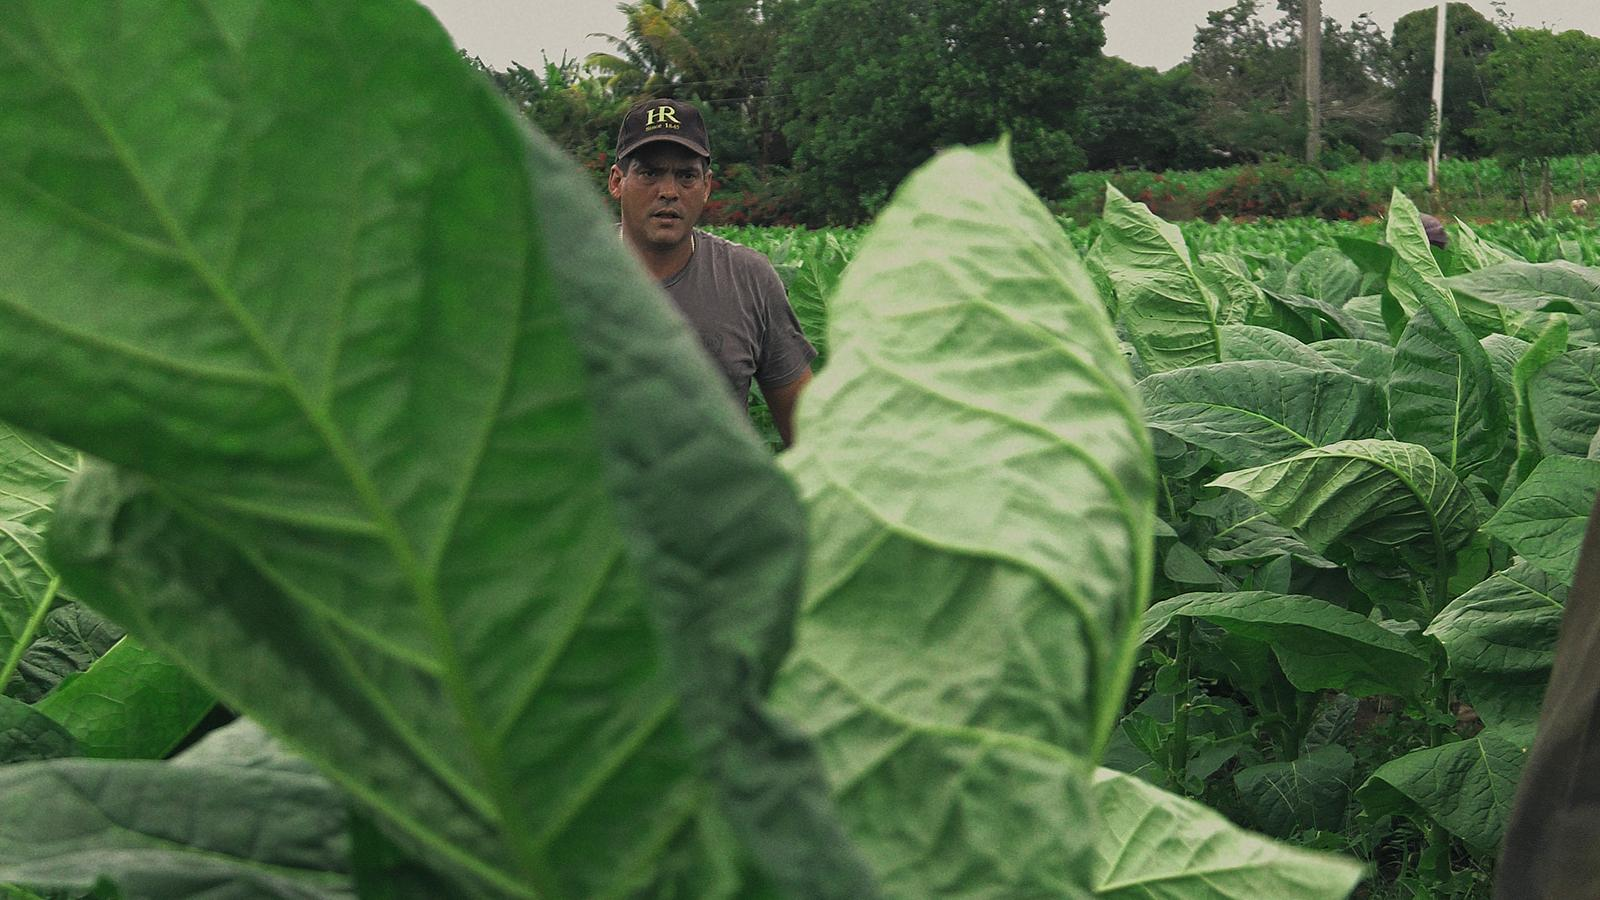 The film chronicles the challenges Robaina faces as he tries to uphold his family name and rescue his imperiled crop of tobacco.